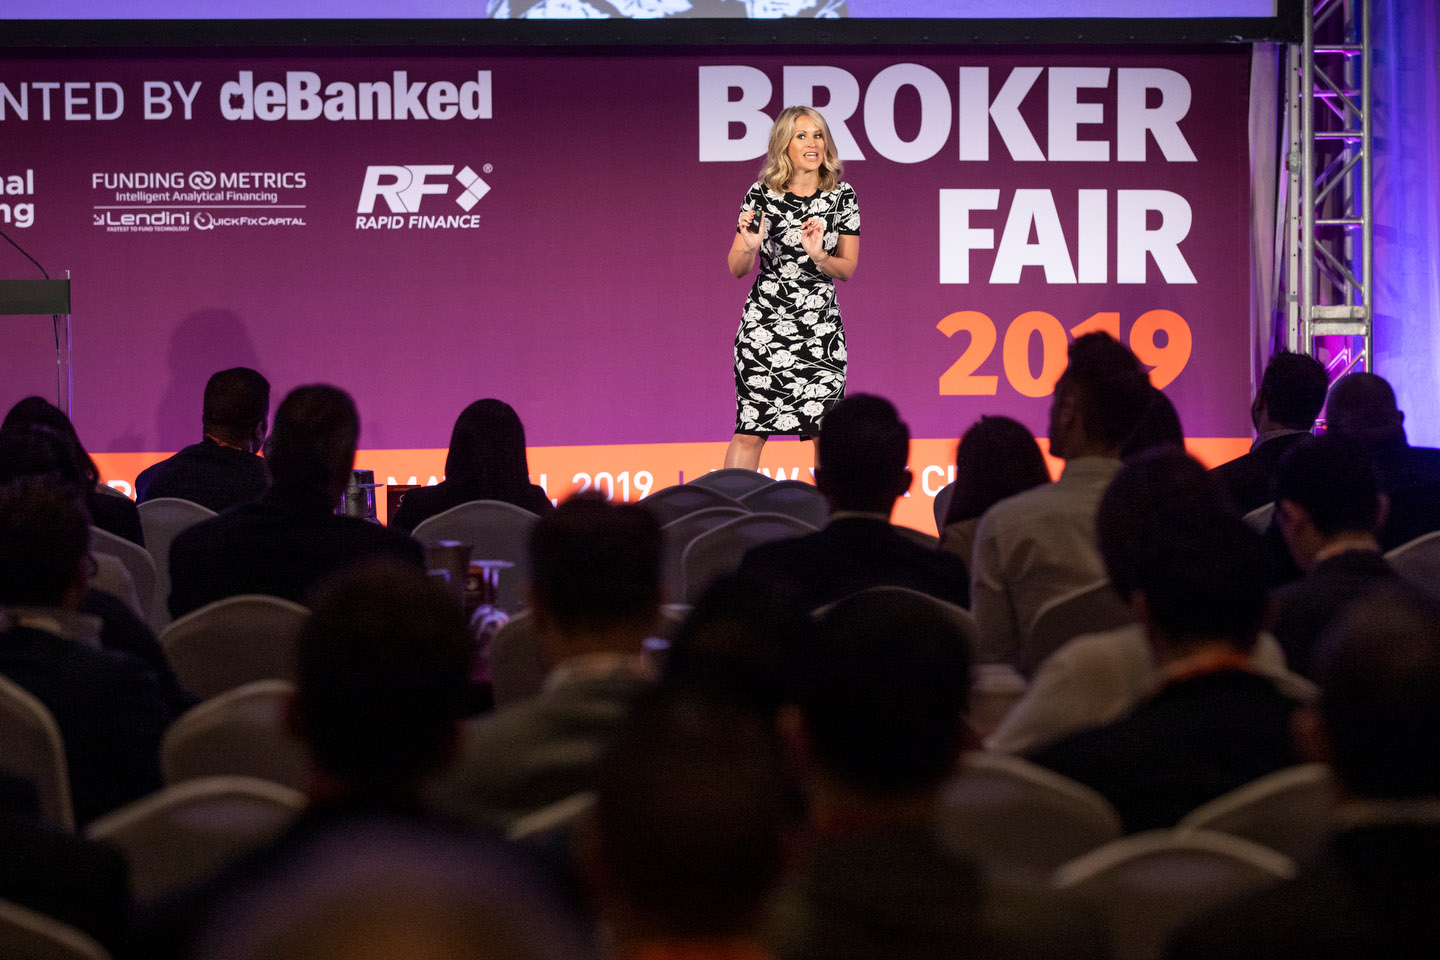 Broker Fair 2019 - Presented by deBanked - 376